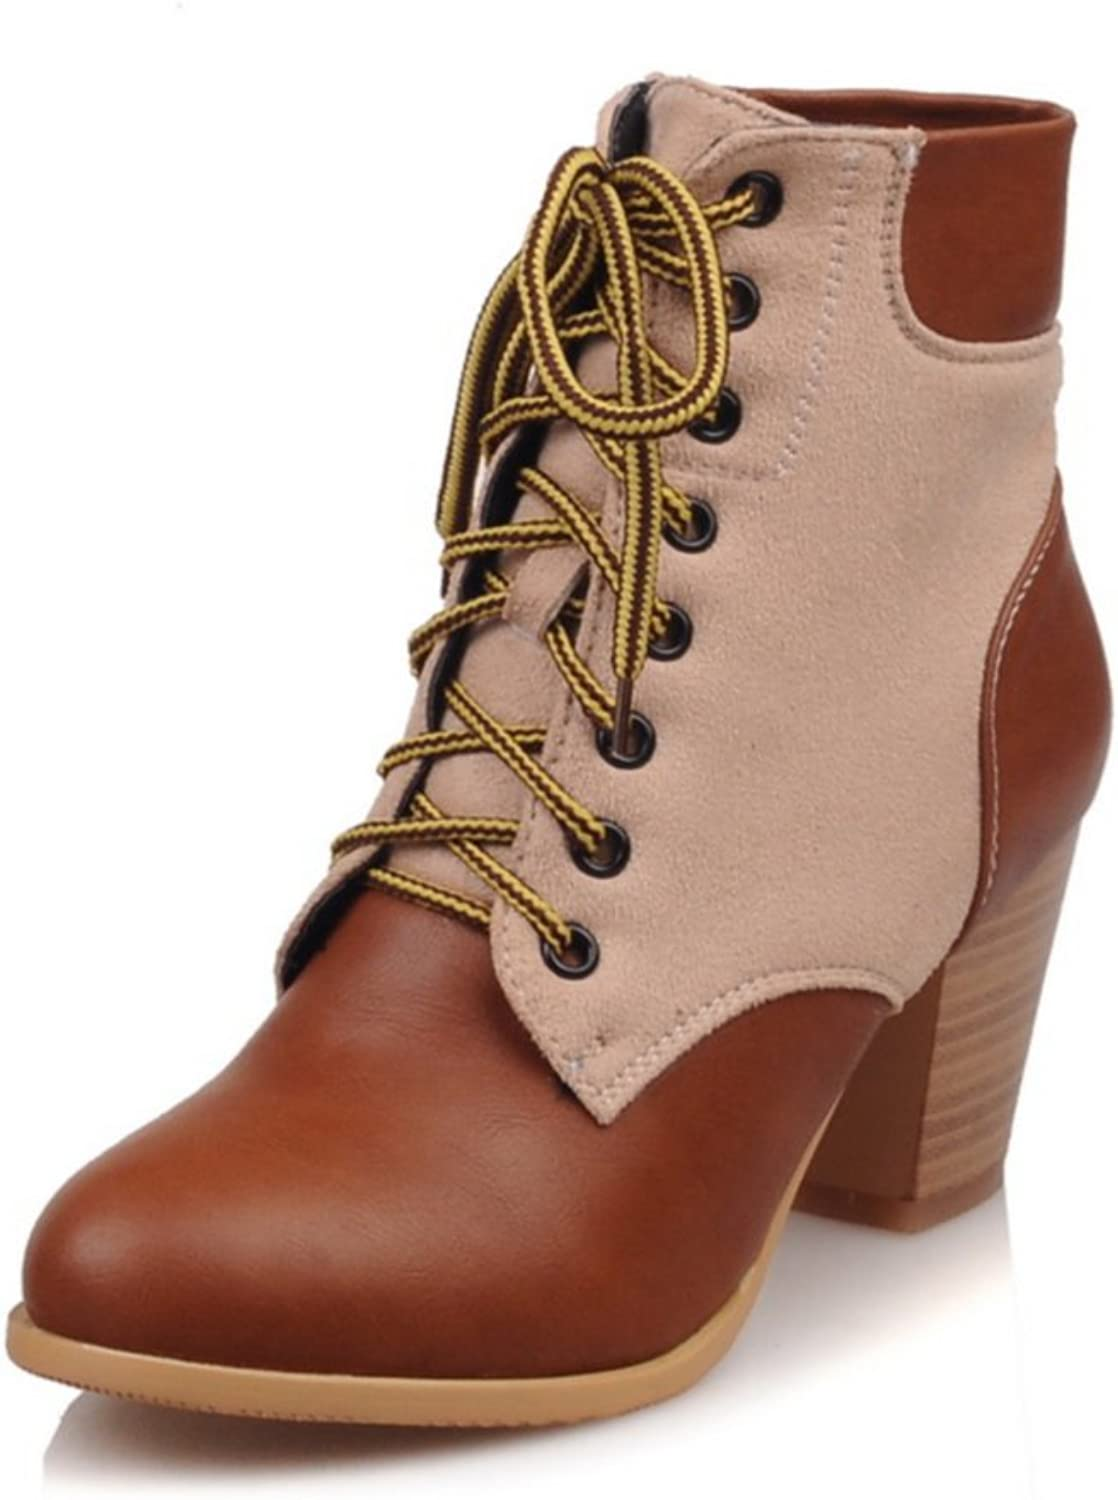 AIWEIYi Ladies Military Boots Round toe Square Heel Lace up Platform Ankle Boots Brown